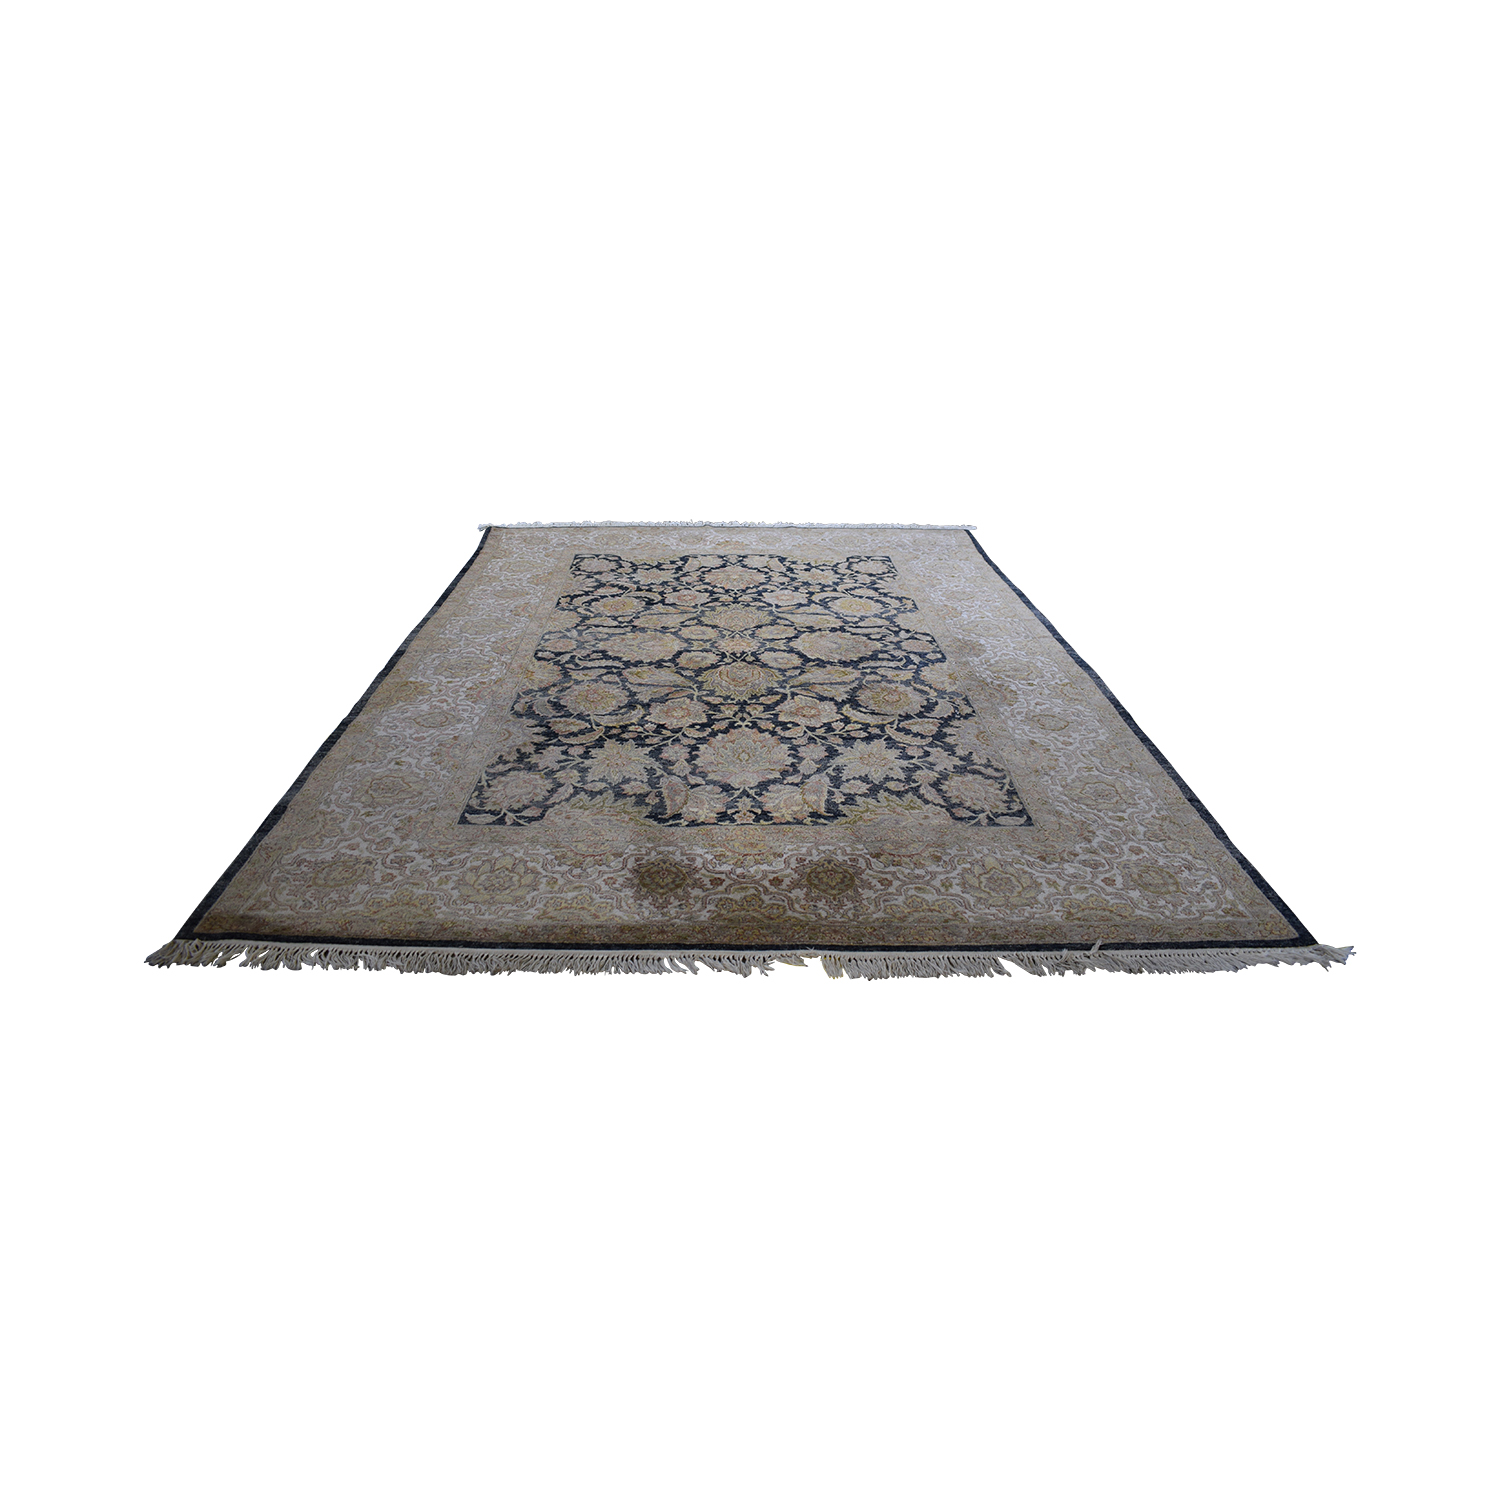 ABC Carpet & Home ABC Carpet & Home 9 x 12 Persian Rug price